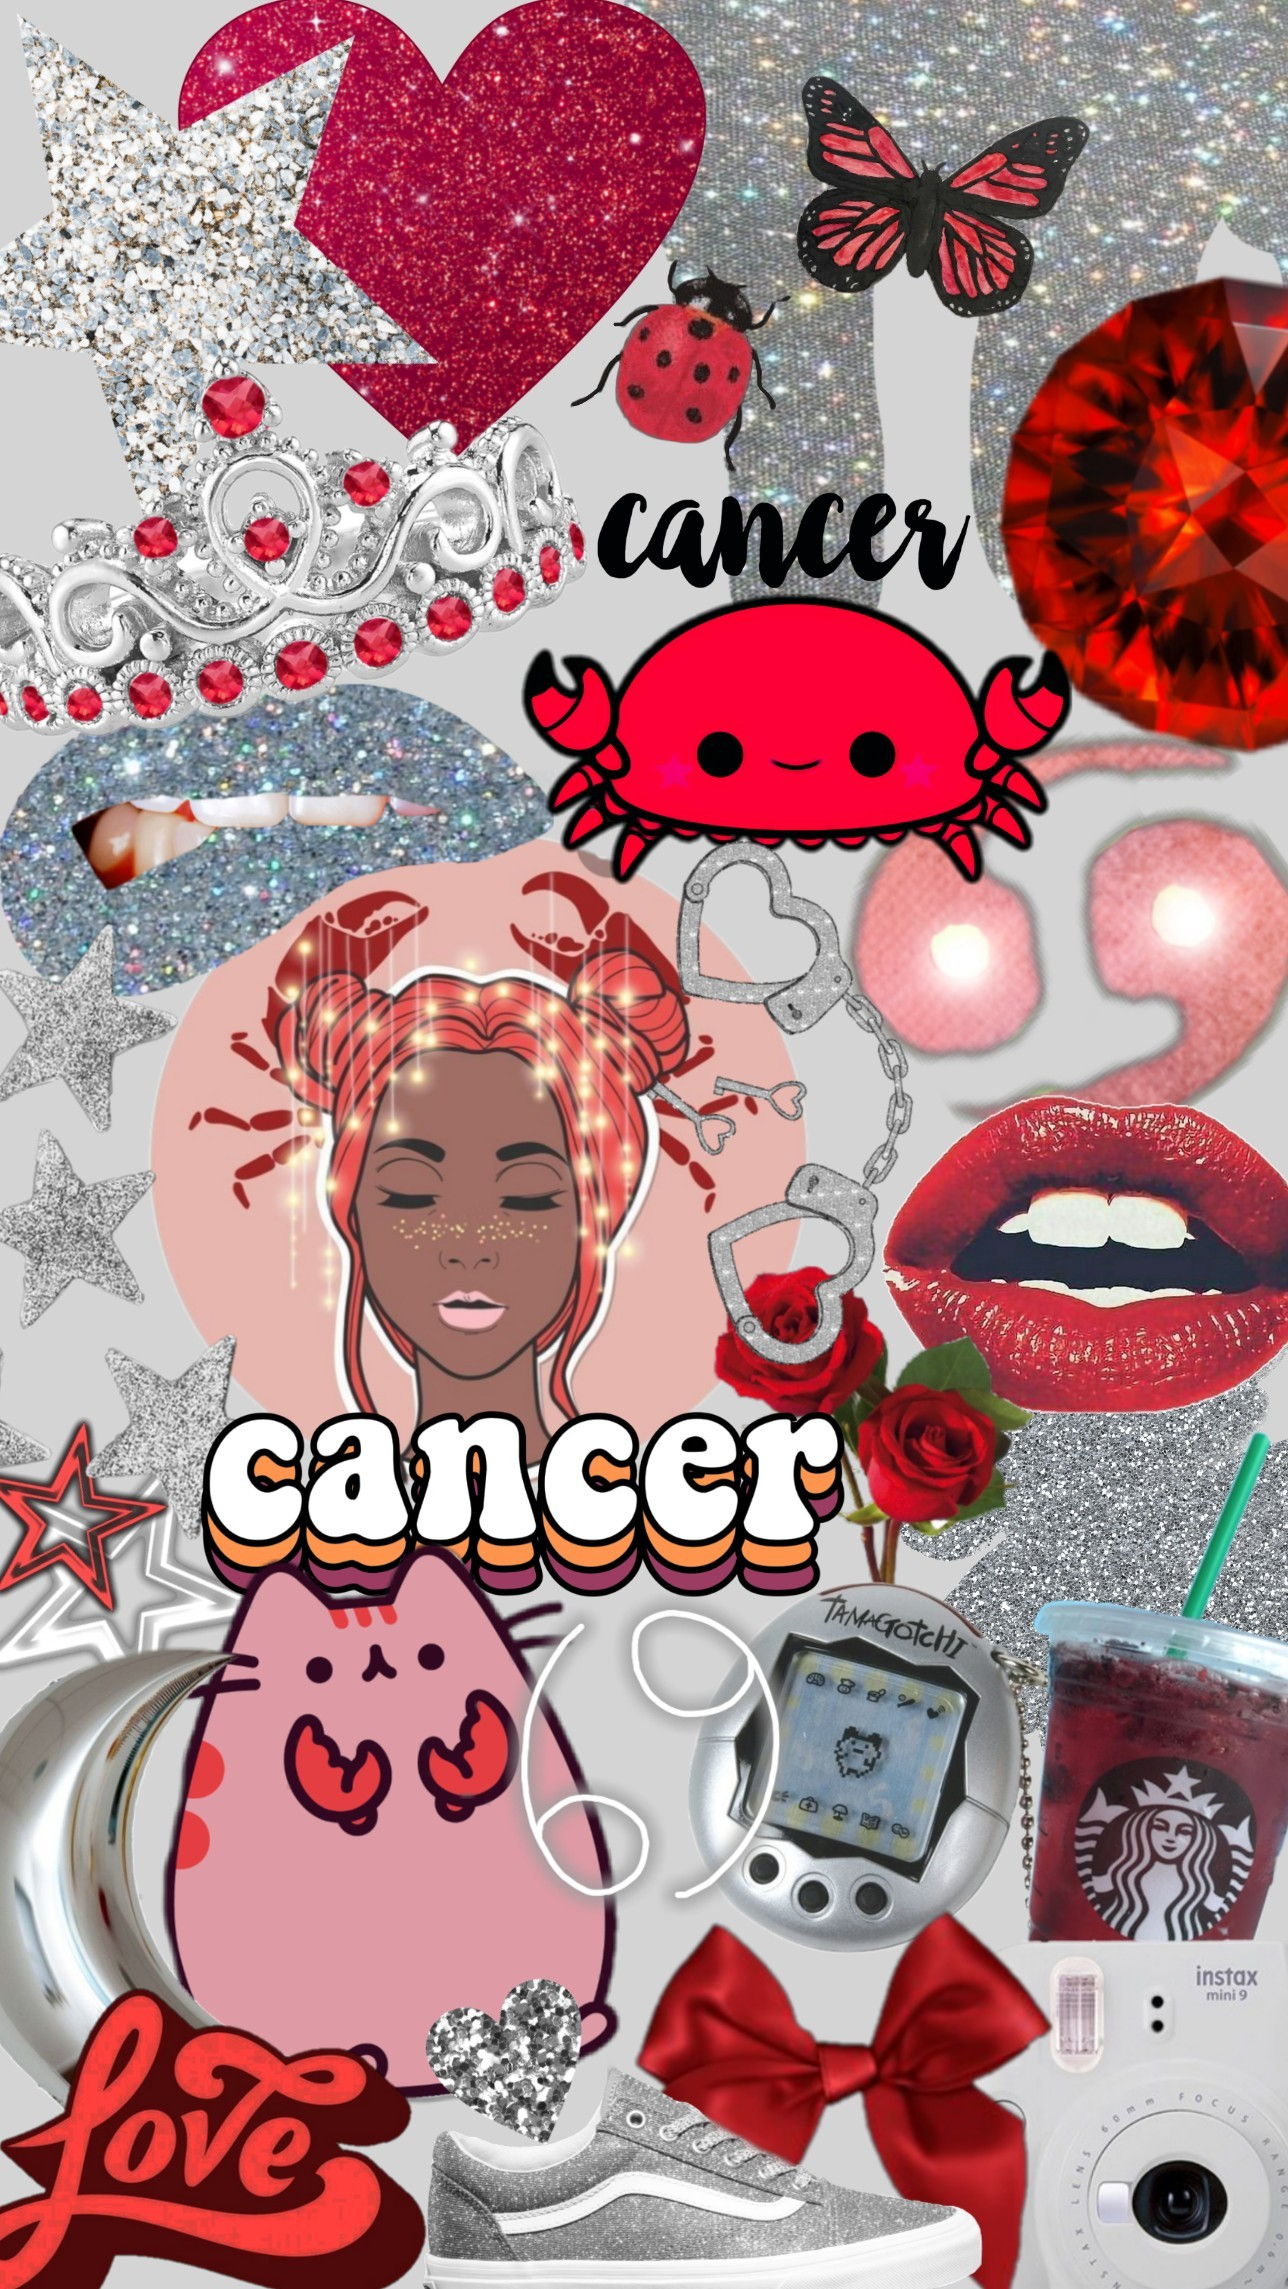 Cancer Iphone Wallpaper Background Shared By Audrey